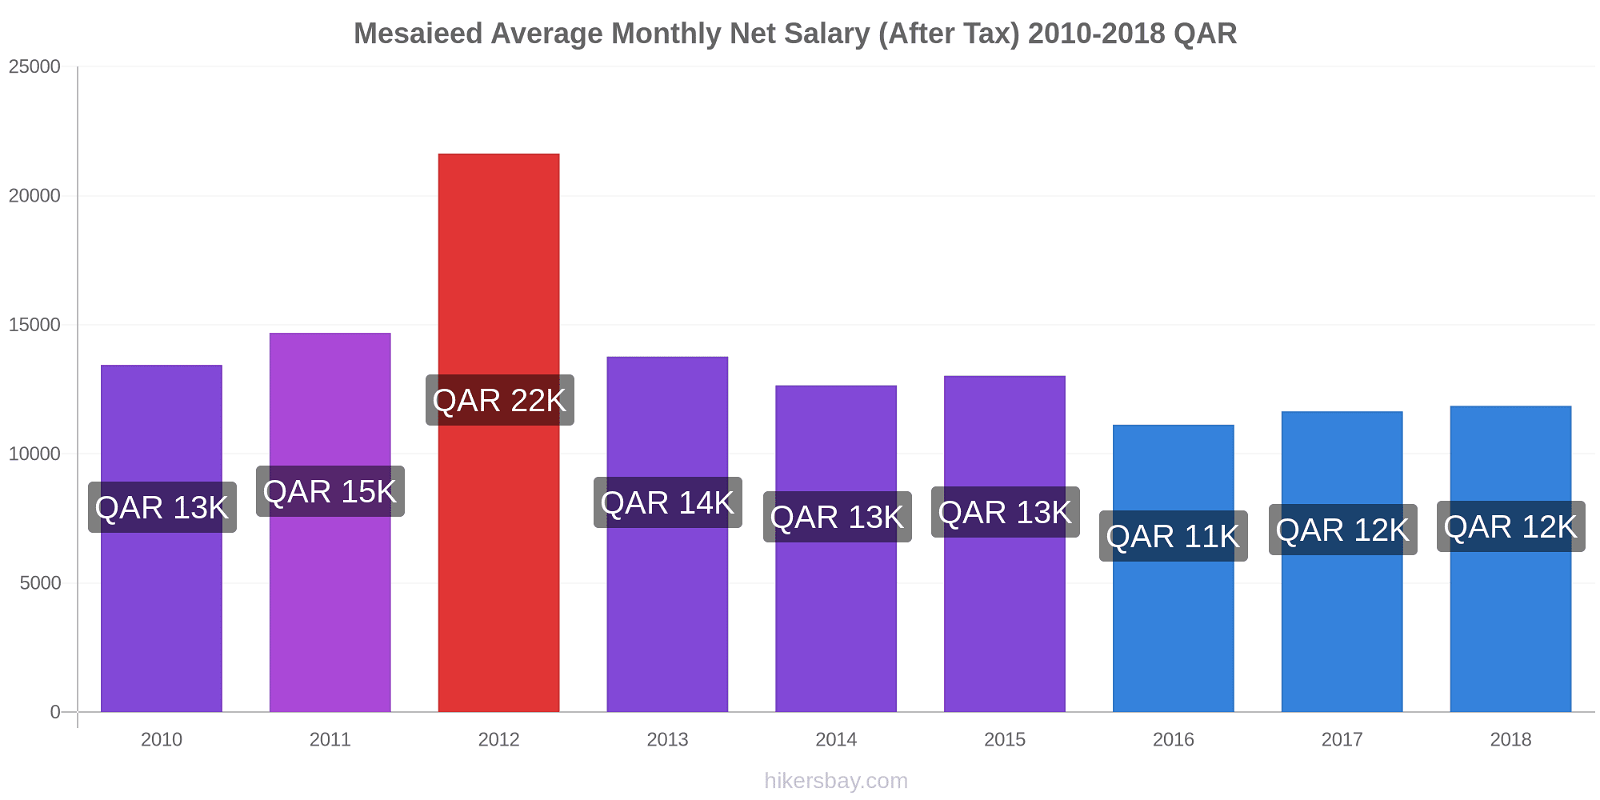 Mesaieed price changes Average Monthly Net Salary (After Tax) hikersbay.com